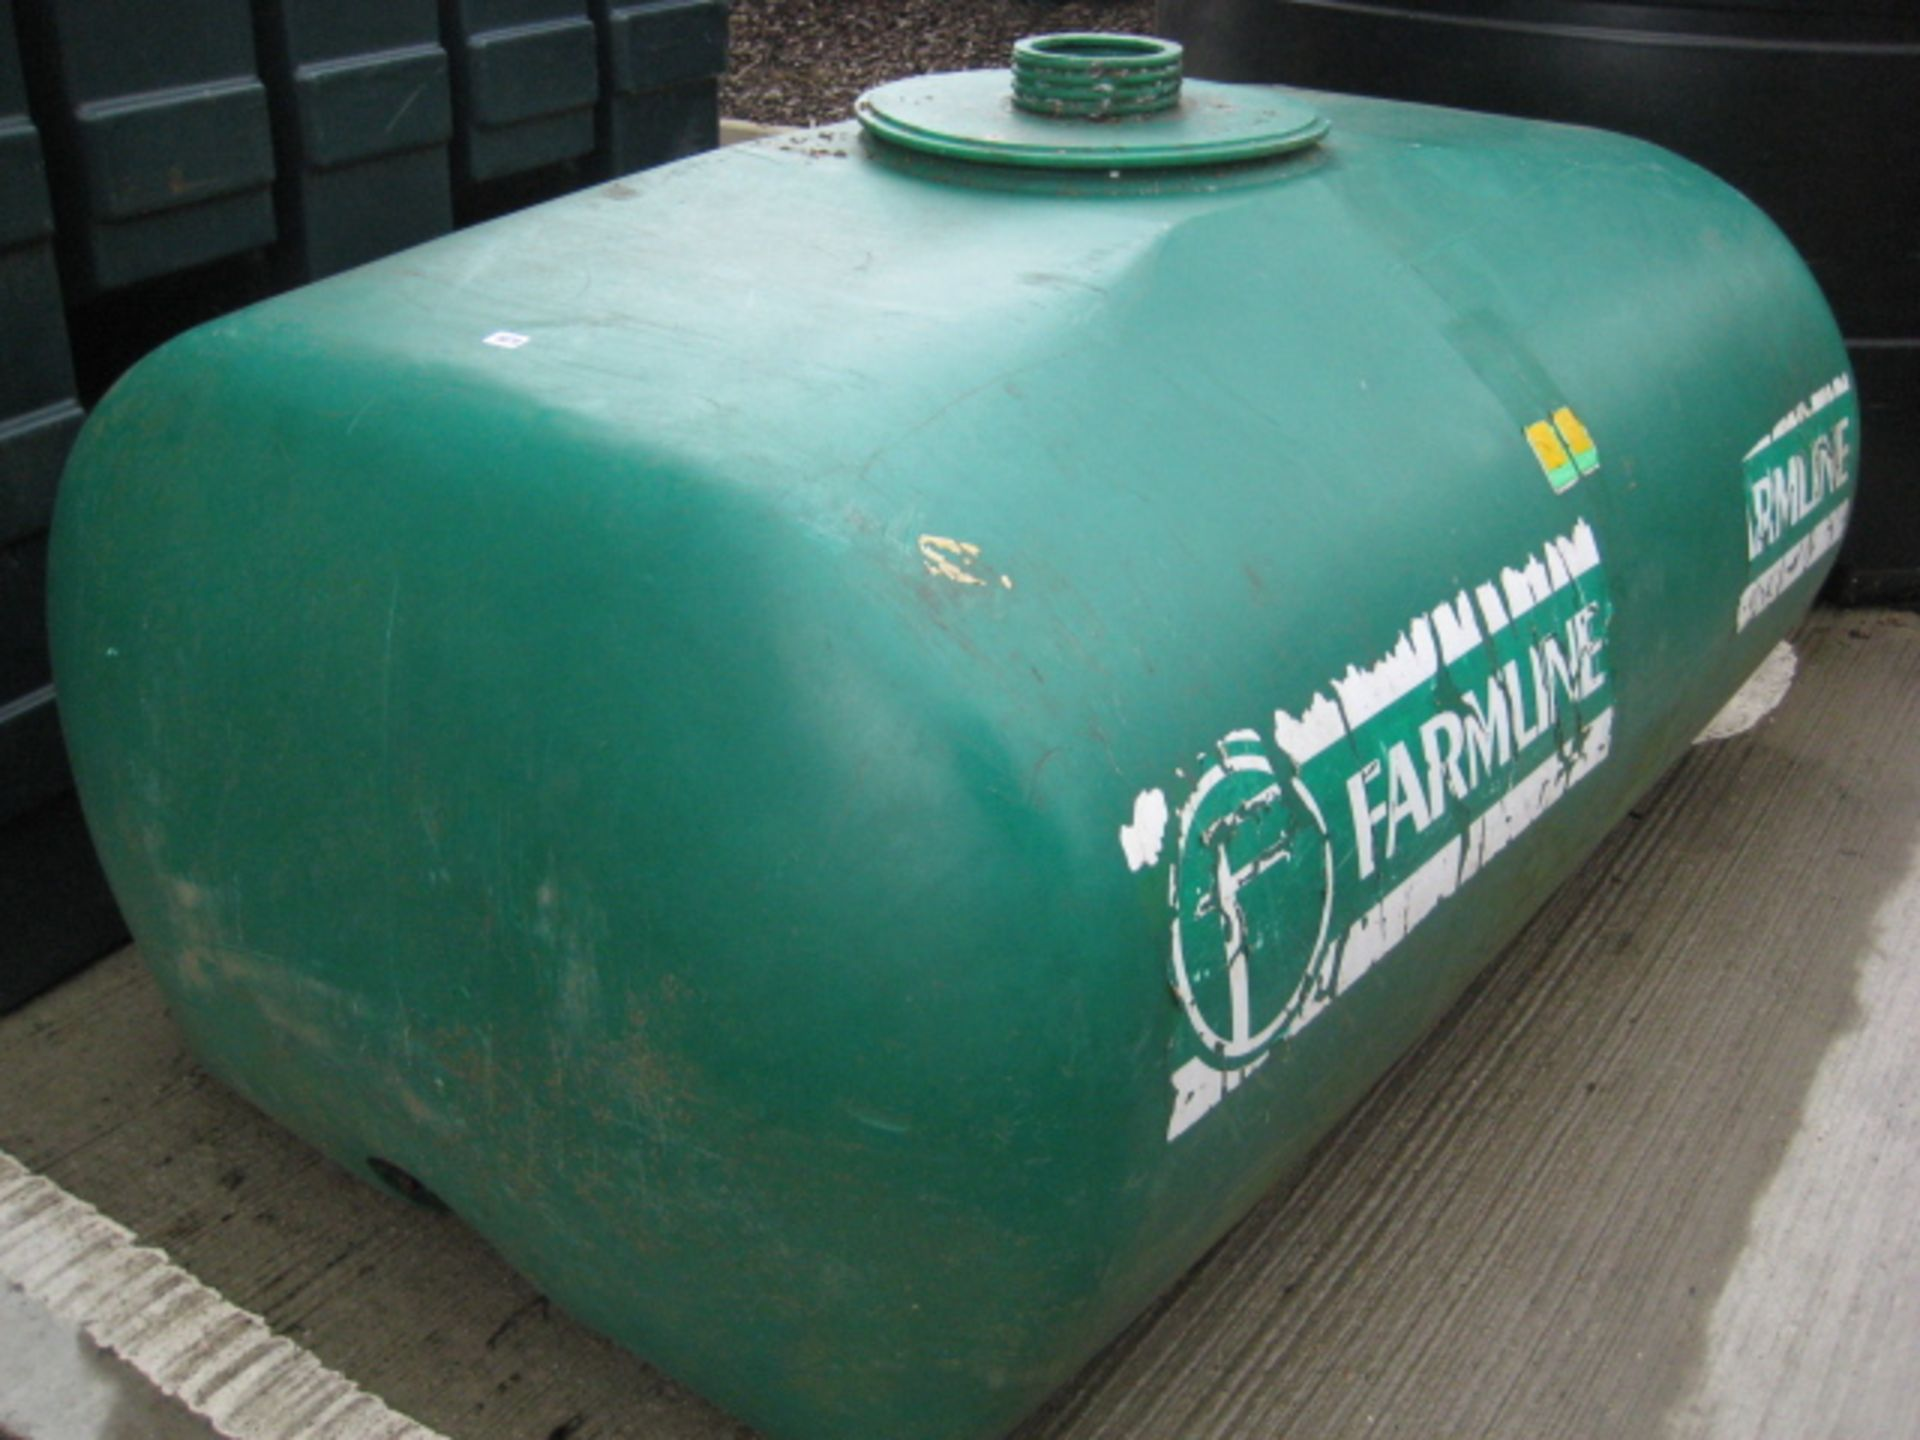 Lot 4079 - Large green water bowser